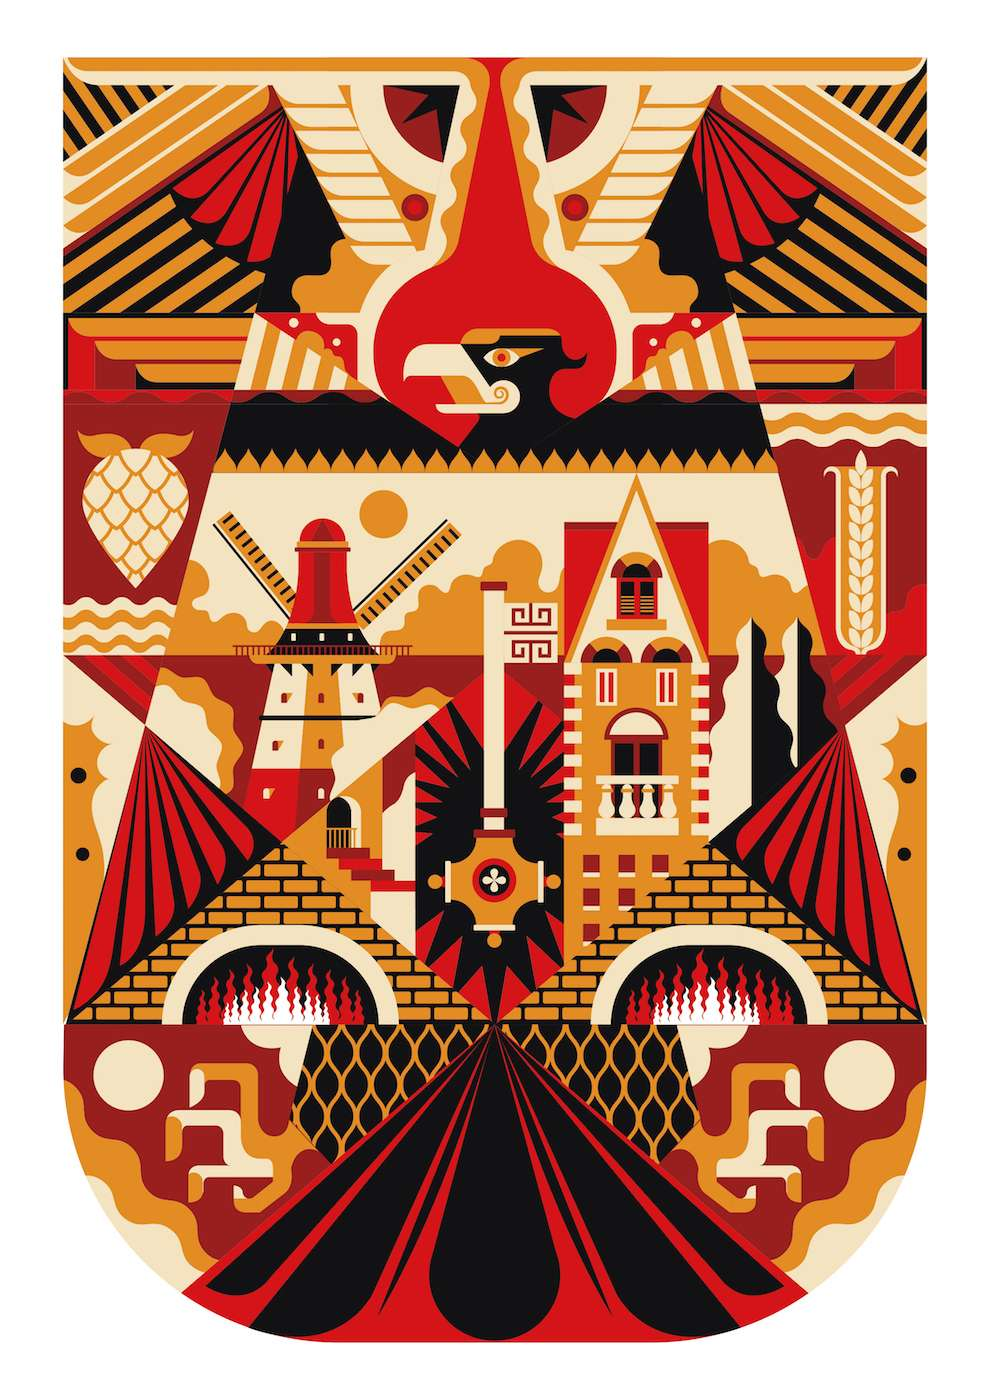 Jonny Wan, Bold and graphic illustration